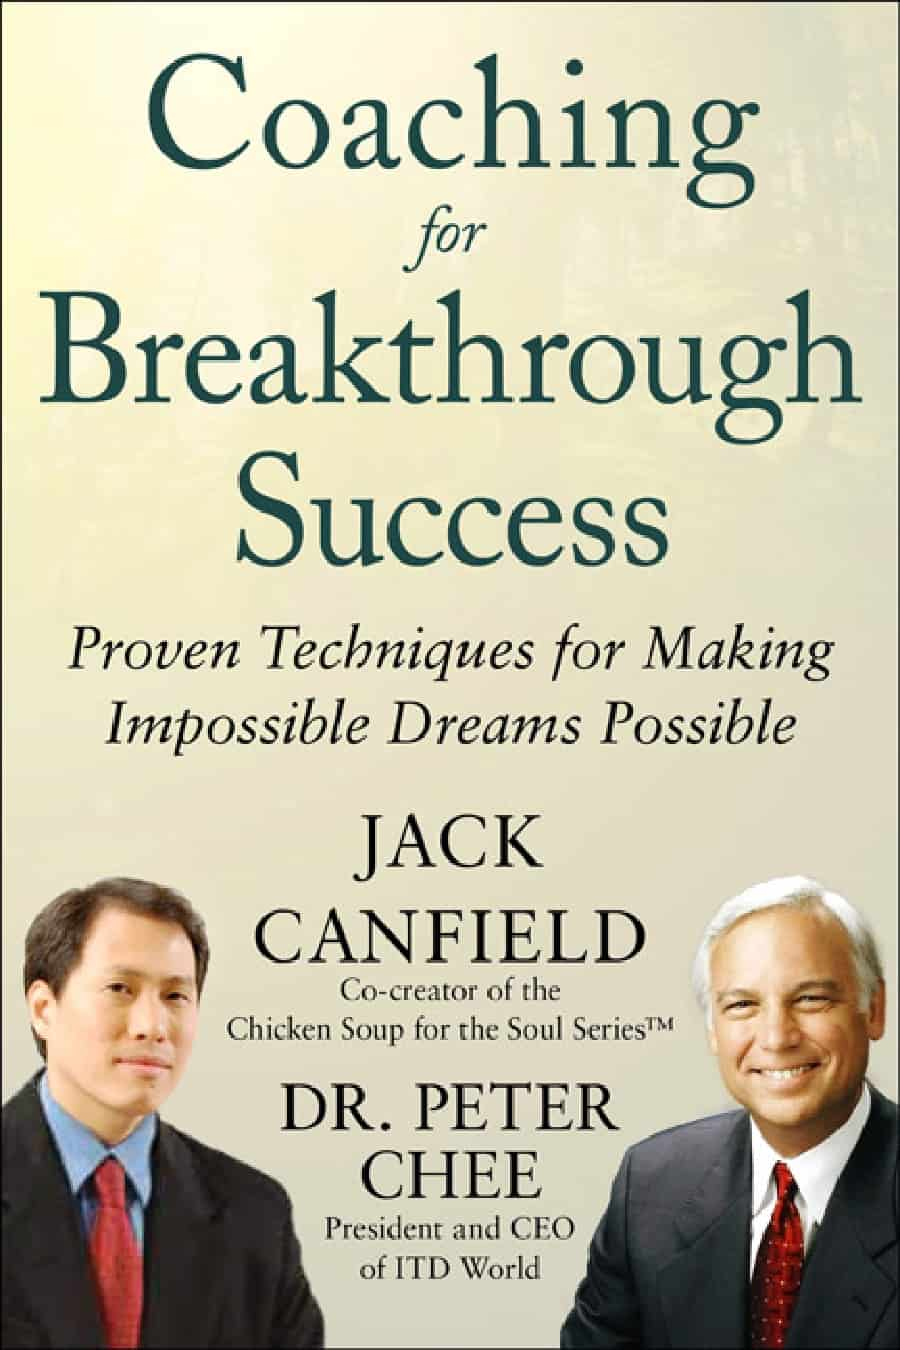 Coaching for Breakthrough Success - Jack Canfield và Peter Chee